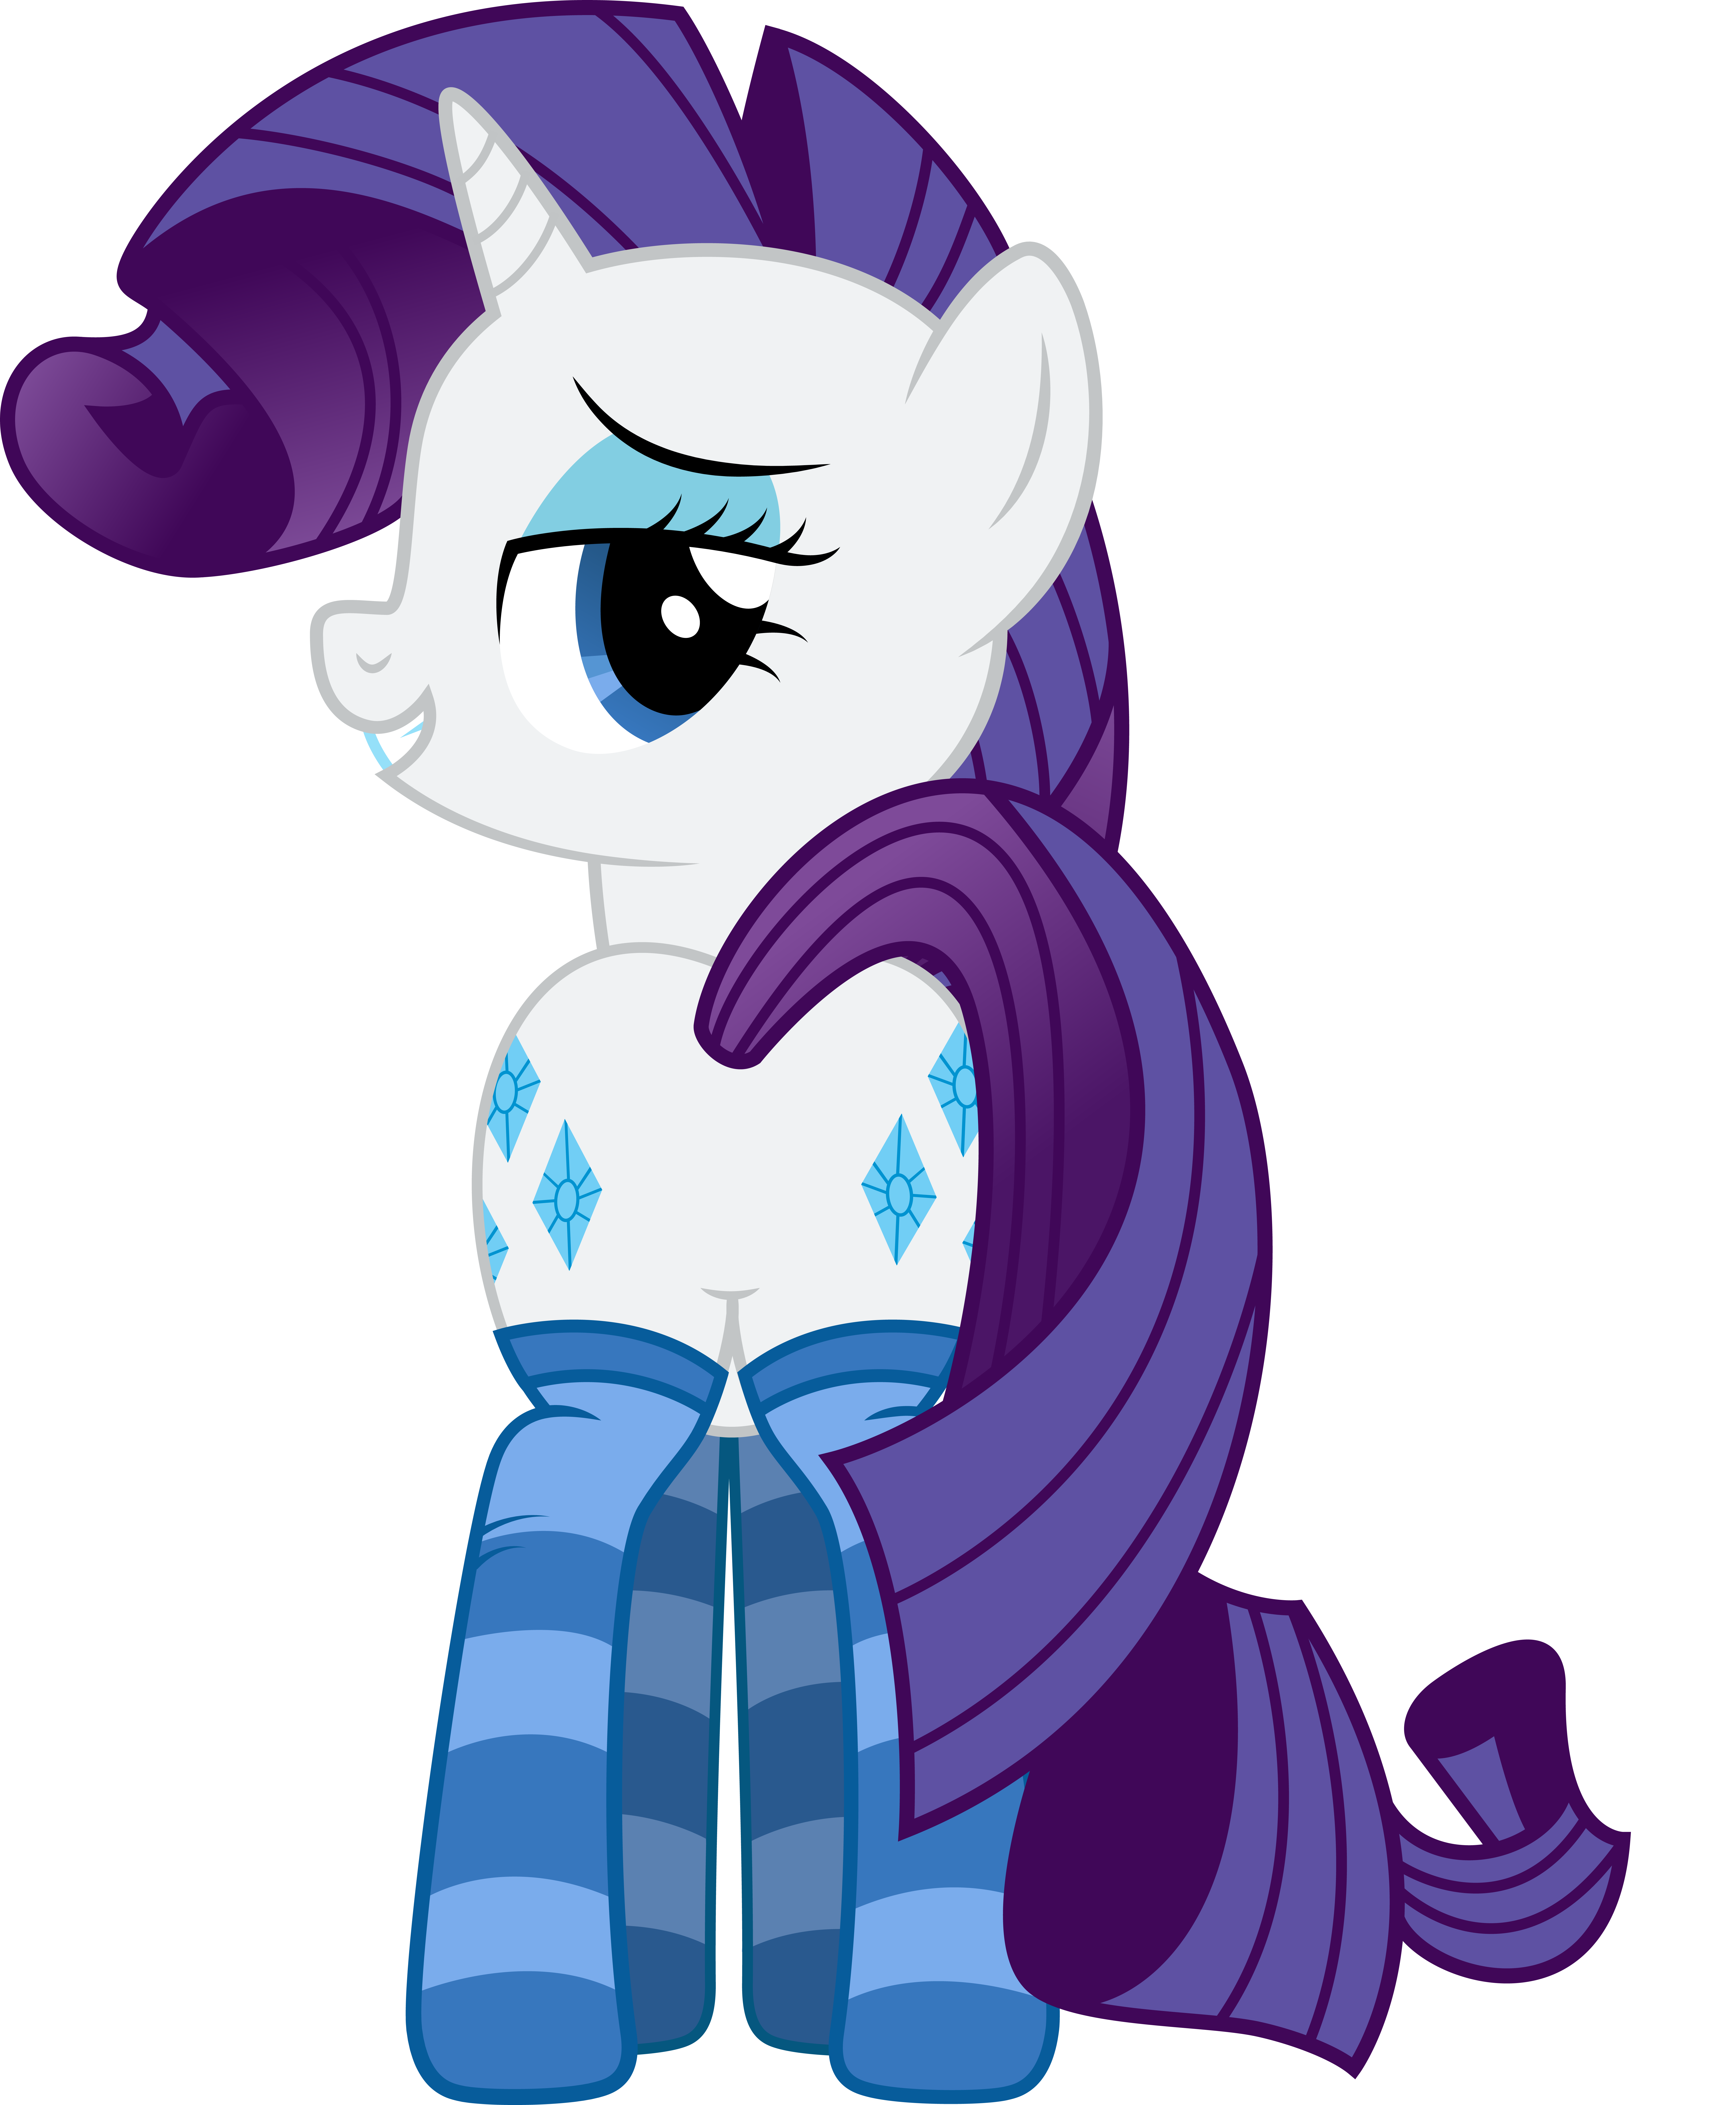 Rarity - Dat Plot [Socks] by MrCabezon on DeviantArt